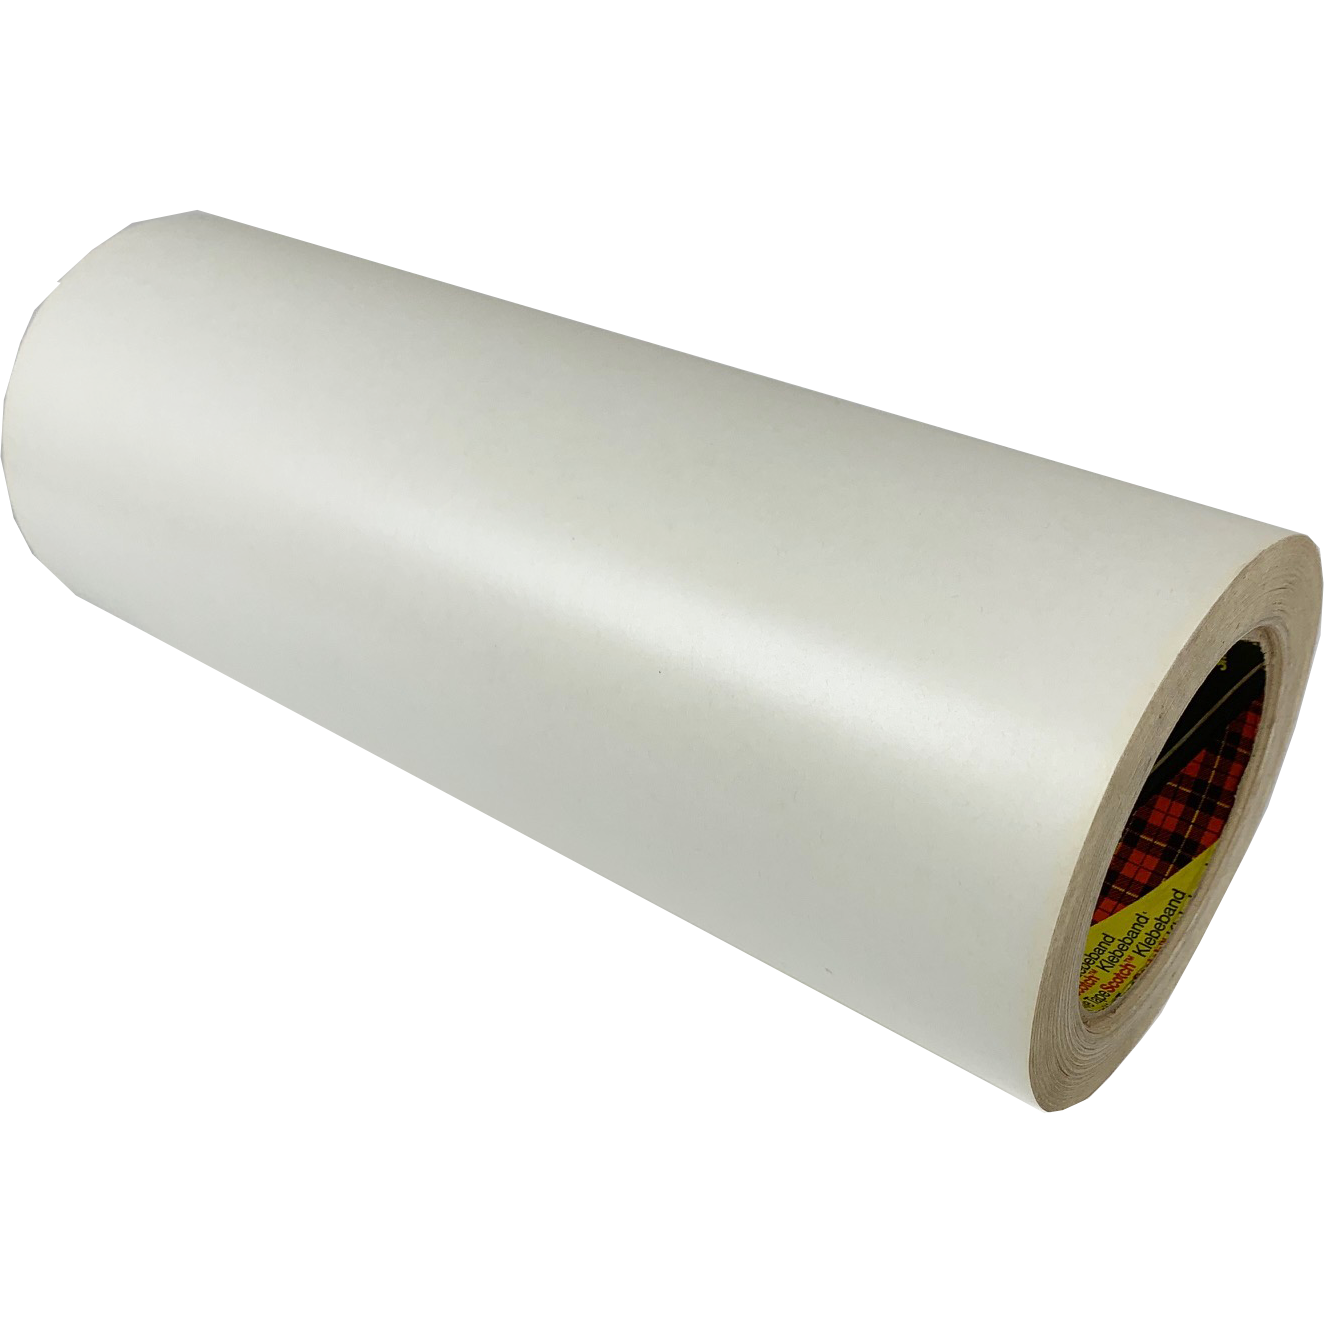 Scotch Pressure Sensitive Double-Sided Adhesive Roll 300mm x 30m